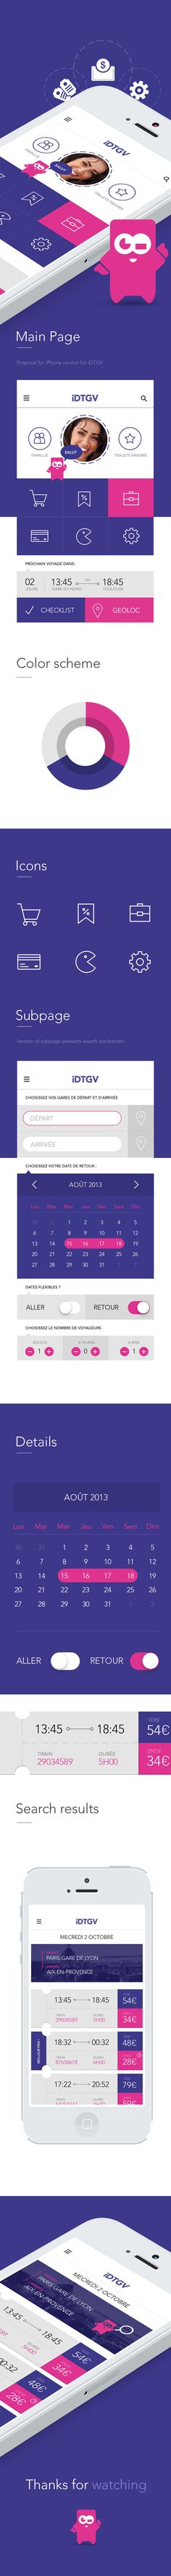 iOS7 Proposal iDTGV by Michal Parulski, via Behance